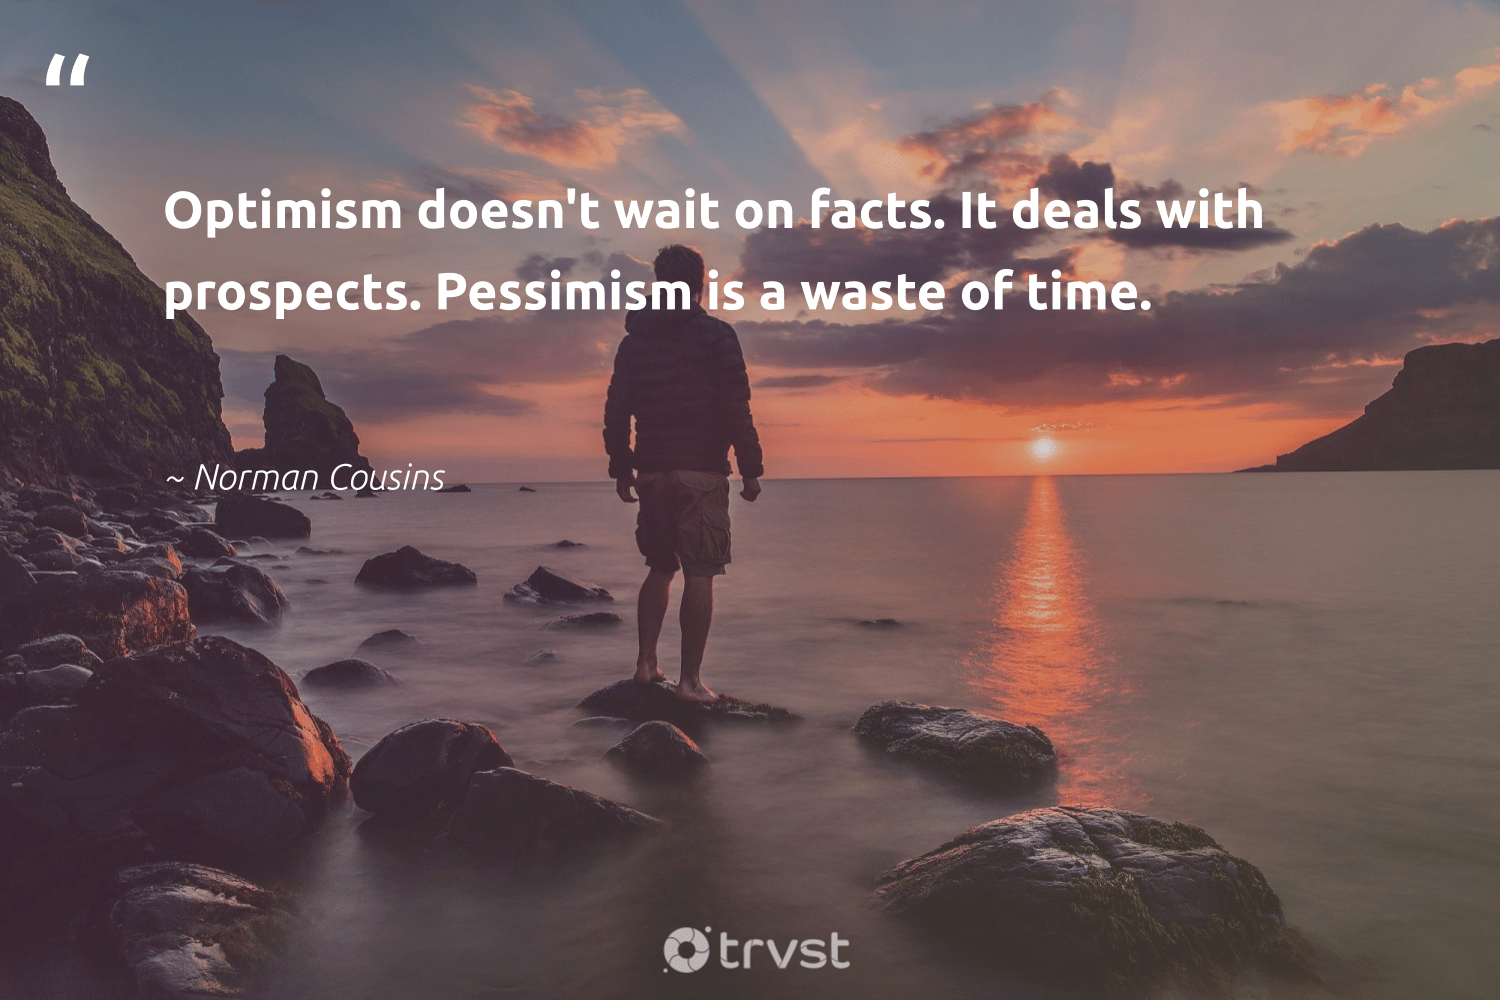 """Optimism doesn't wait on facts. It deals with prospects. Pessimism is a waste of time.""  - Norman Cousins #trvst #quotes #waste #togetherwecan #thinkgreen #begreat #collectiveaction #nevergiveup #impact #changemakers #gogreen #health"